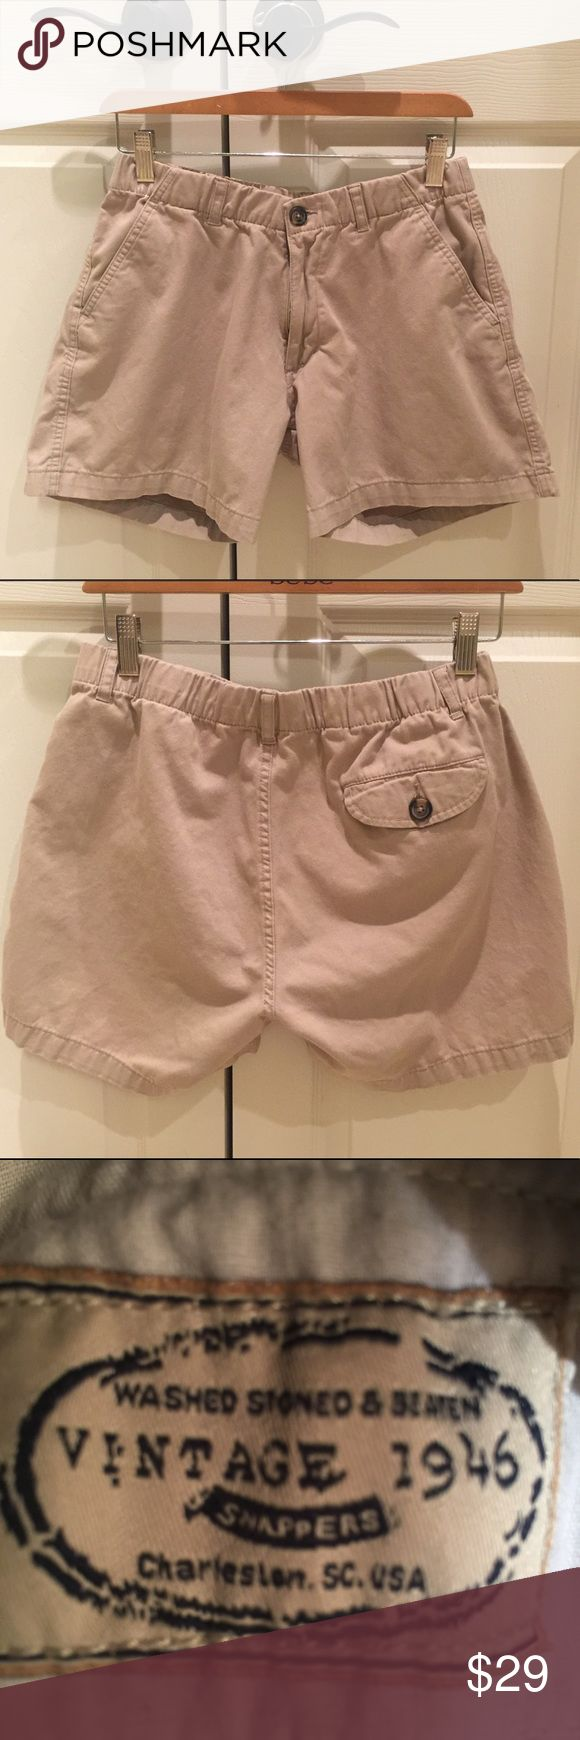 Men's khaki shorts size small Men's khaki shorts size small. In excellent condition. washed stoned & beaten Shorts